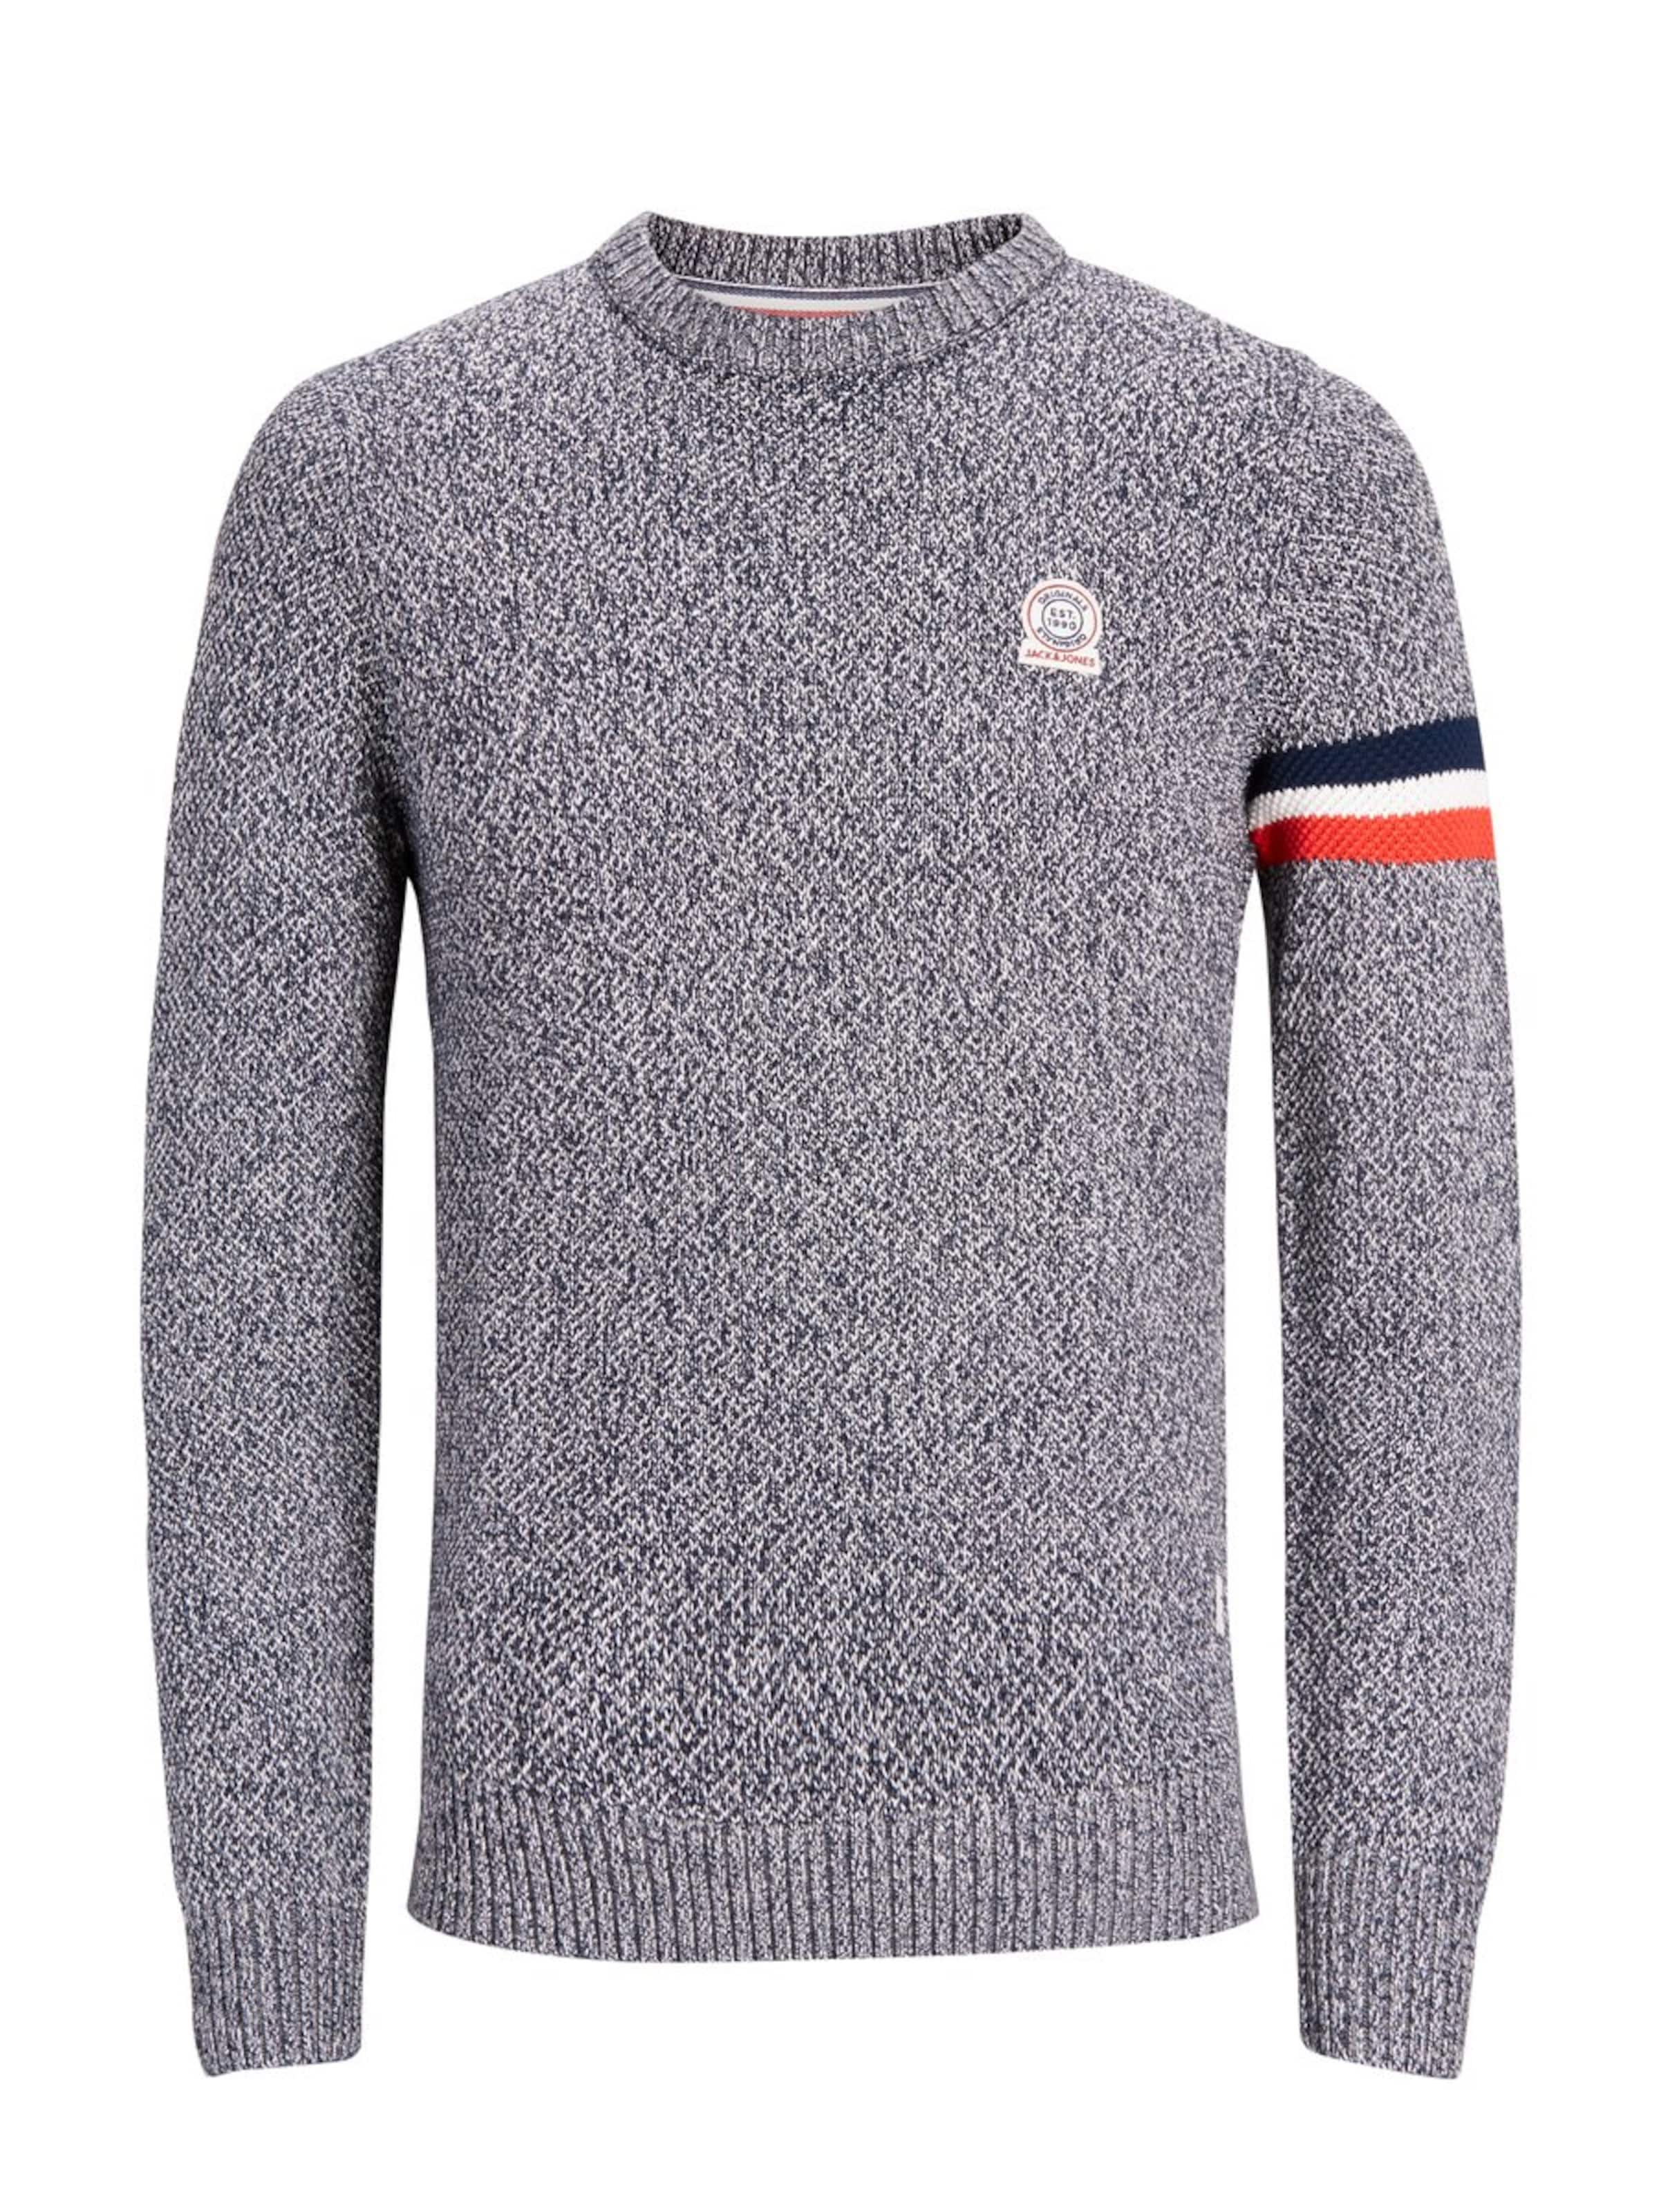 Pull Bleu Rouge MarineGris En Blanc Jones Chiné over Jackamp; 7mbYfgvIy6